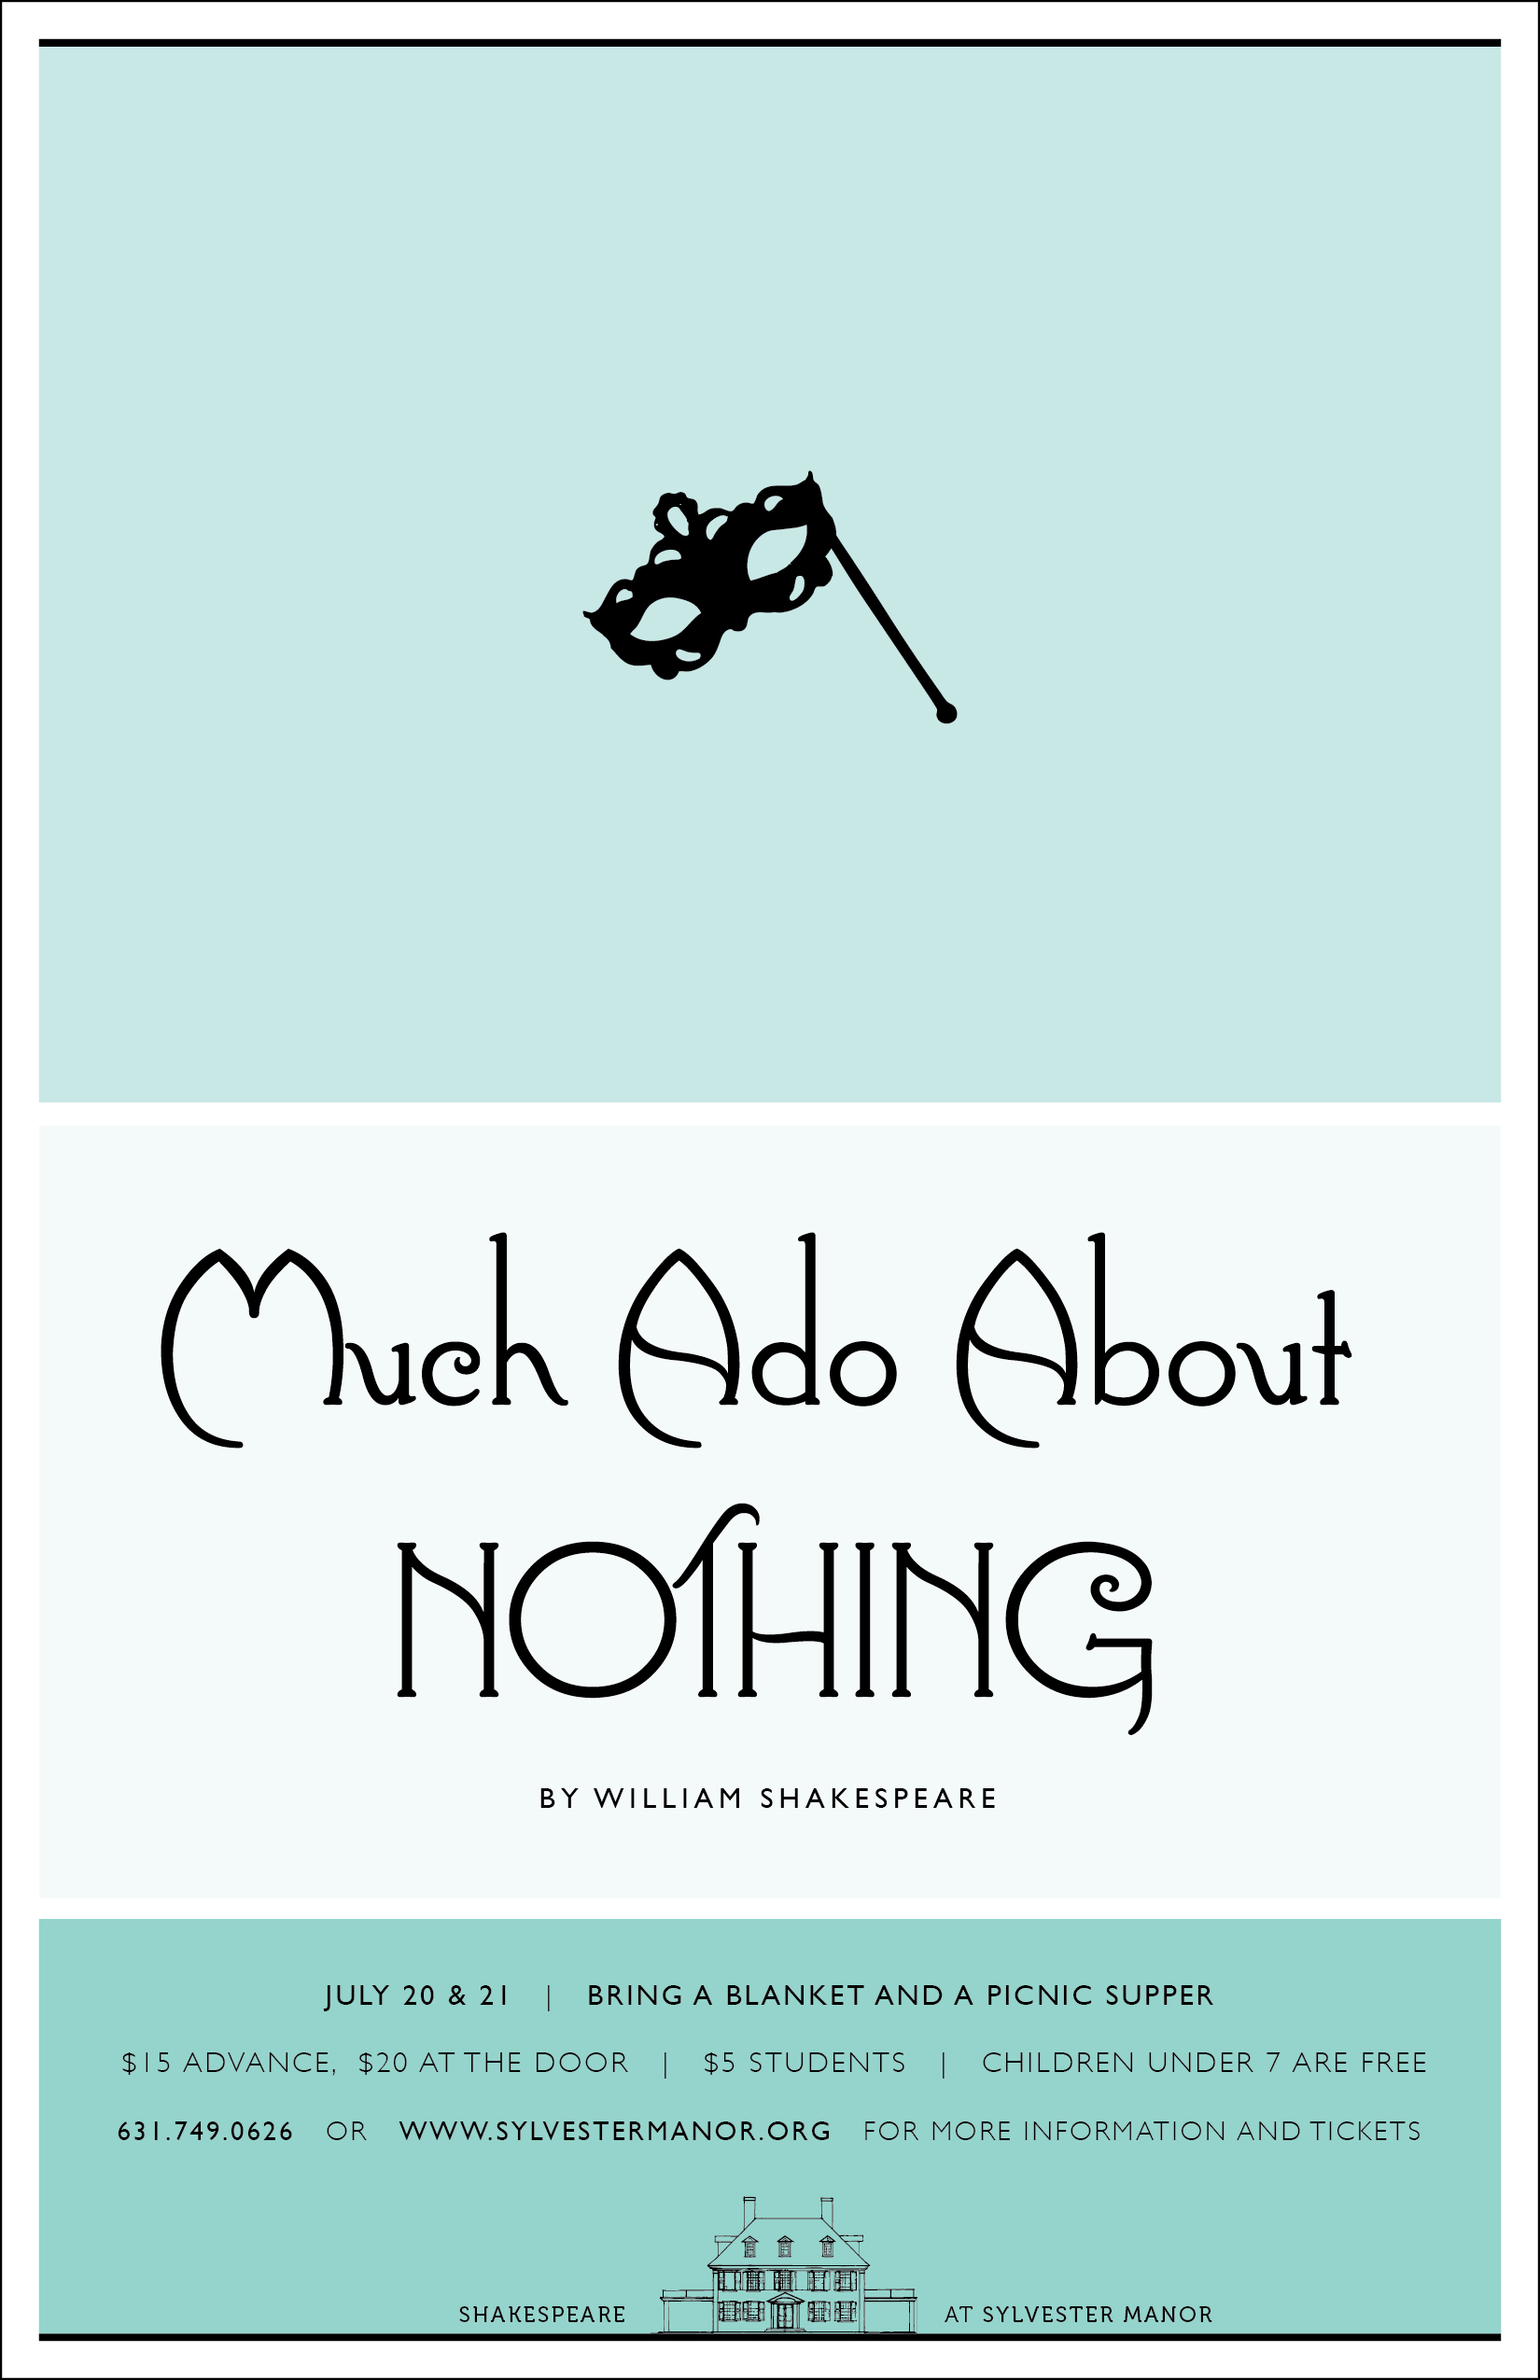 Much-Ado-About-Nothing-POSTER-01-01.jpg